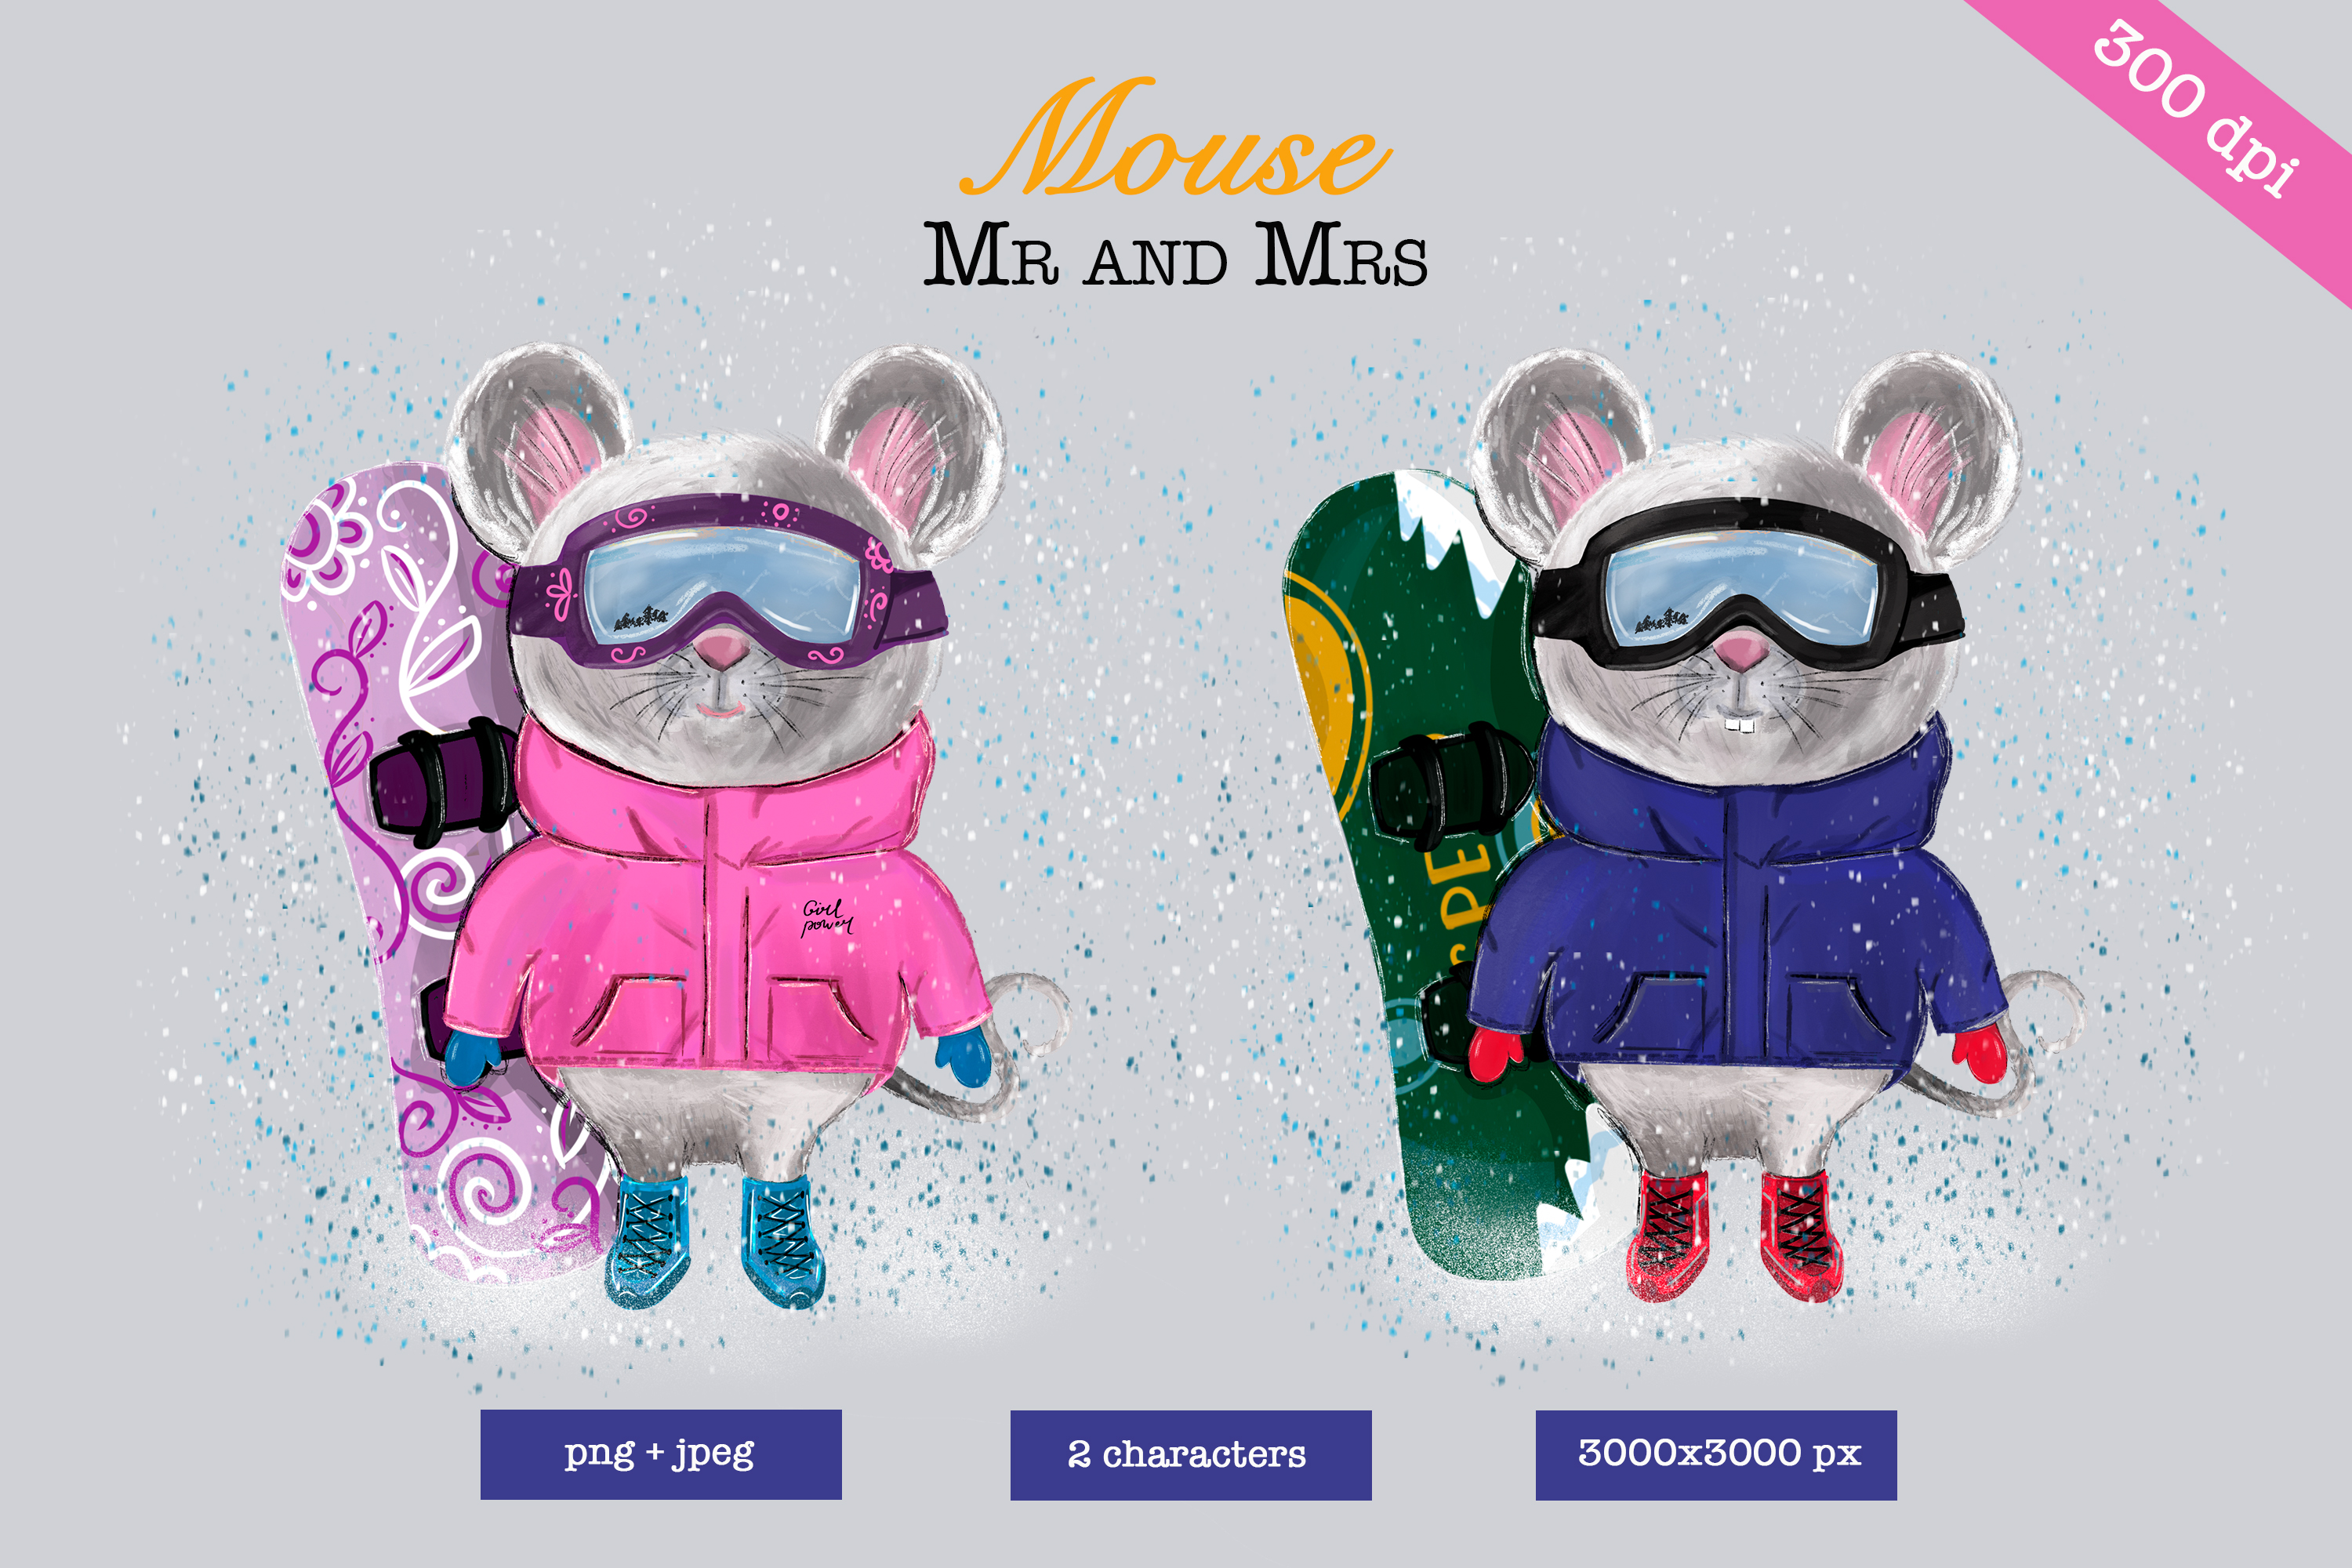 Rat boy and rat girl snowboarder clip art example image 1